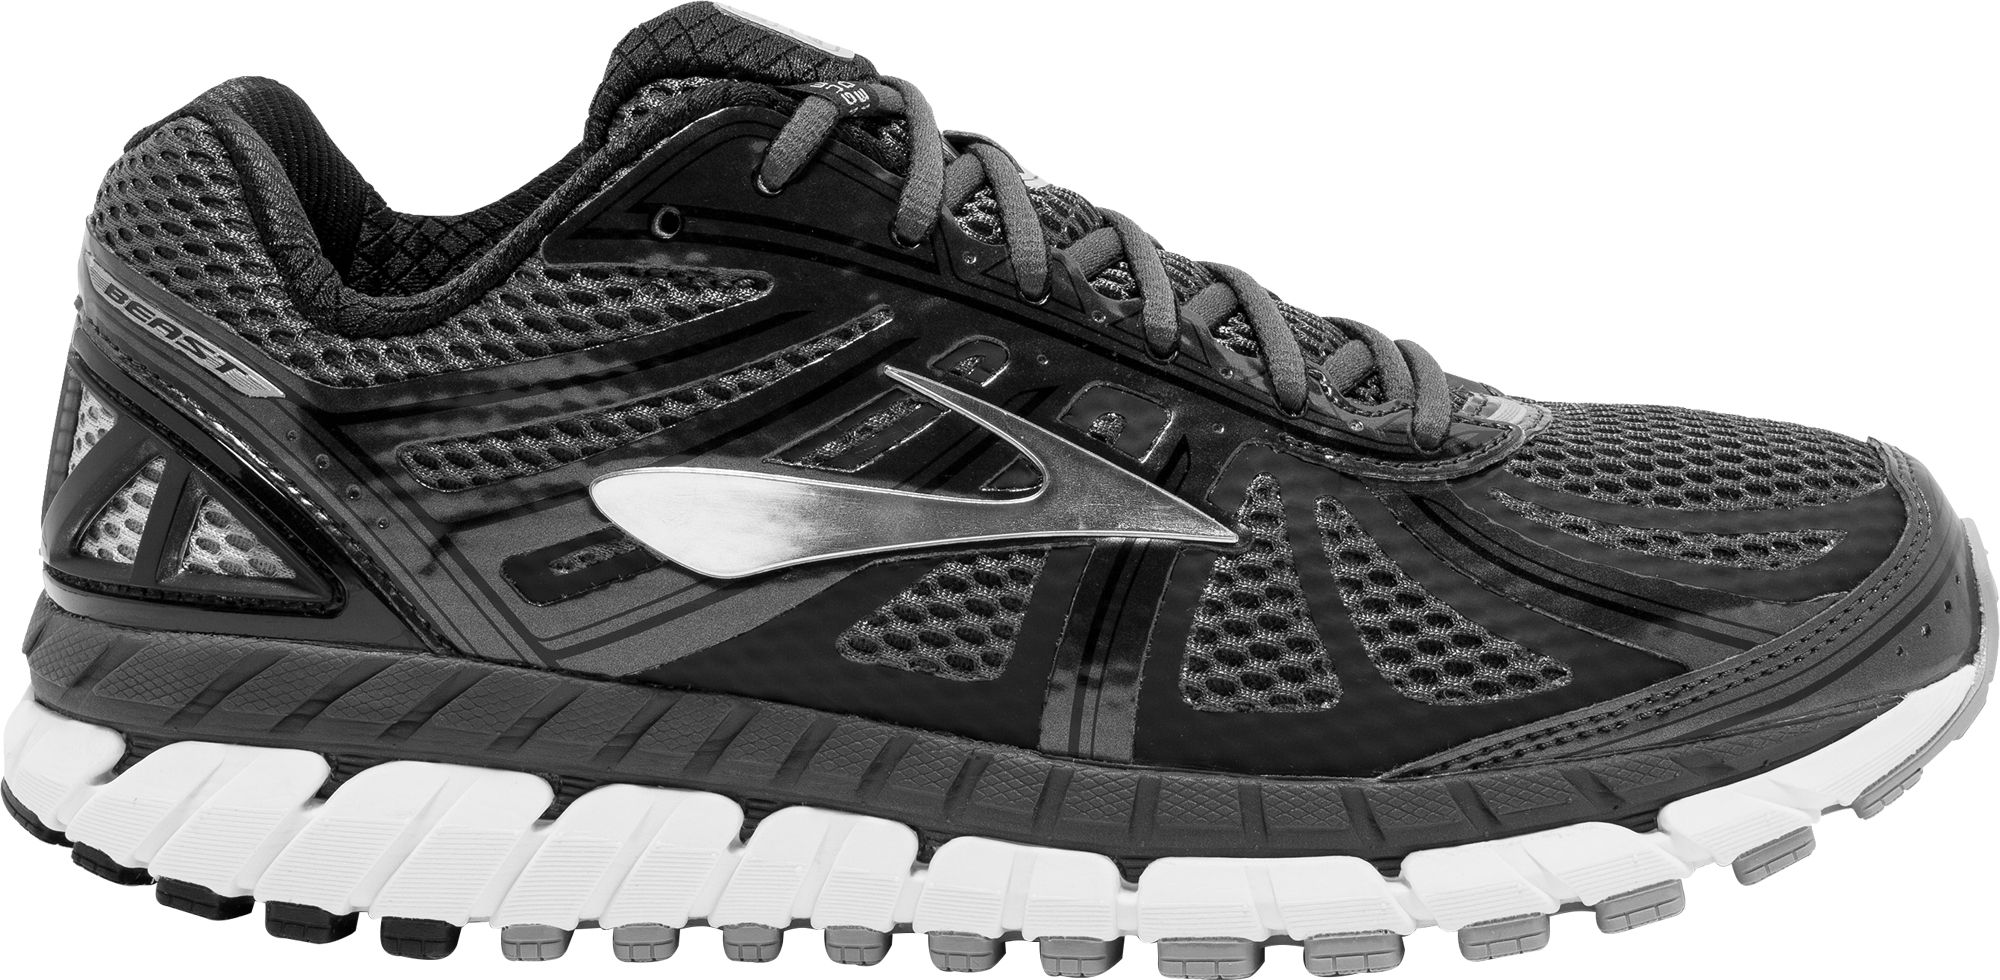 purchase sale online sale classic Brooks Men's Beast '16 Running Shoe discount best wholesale HhE1Vy